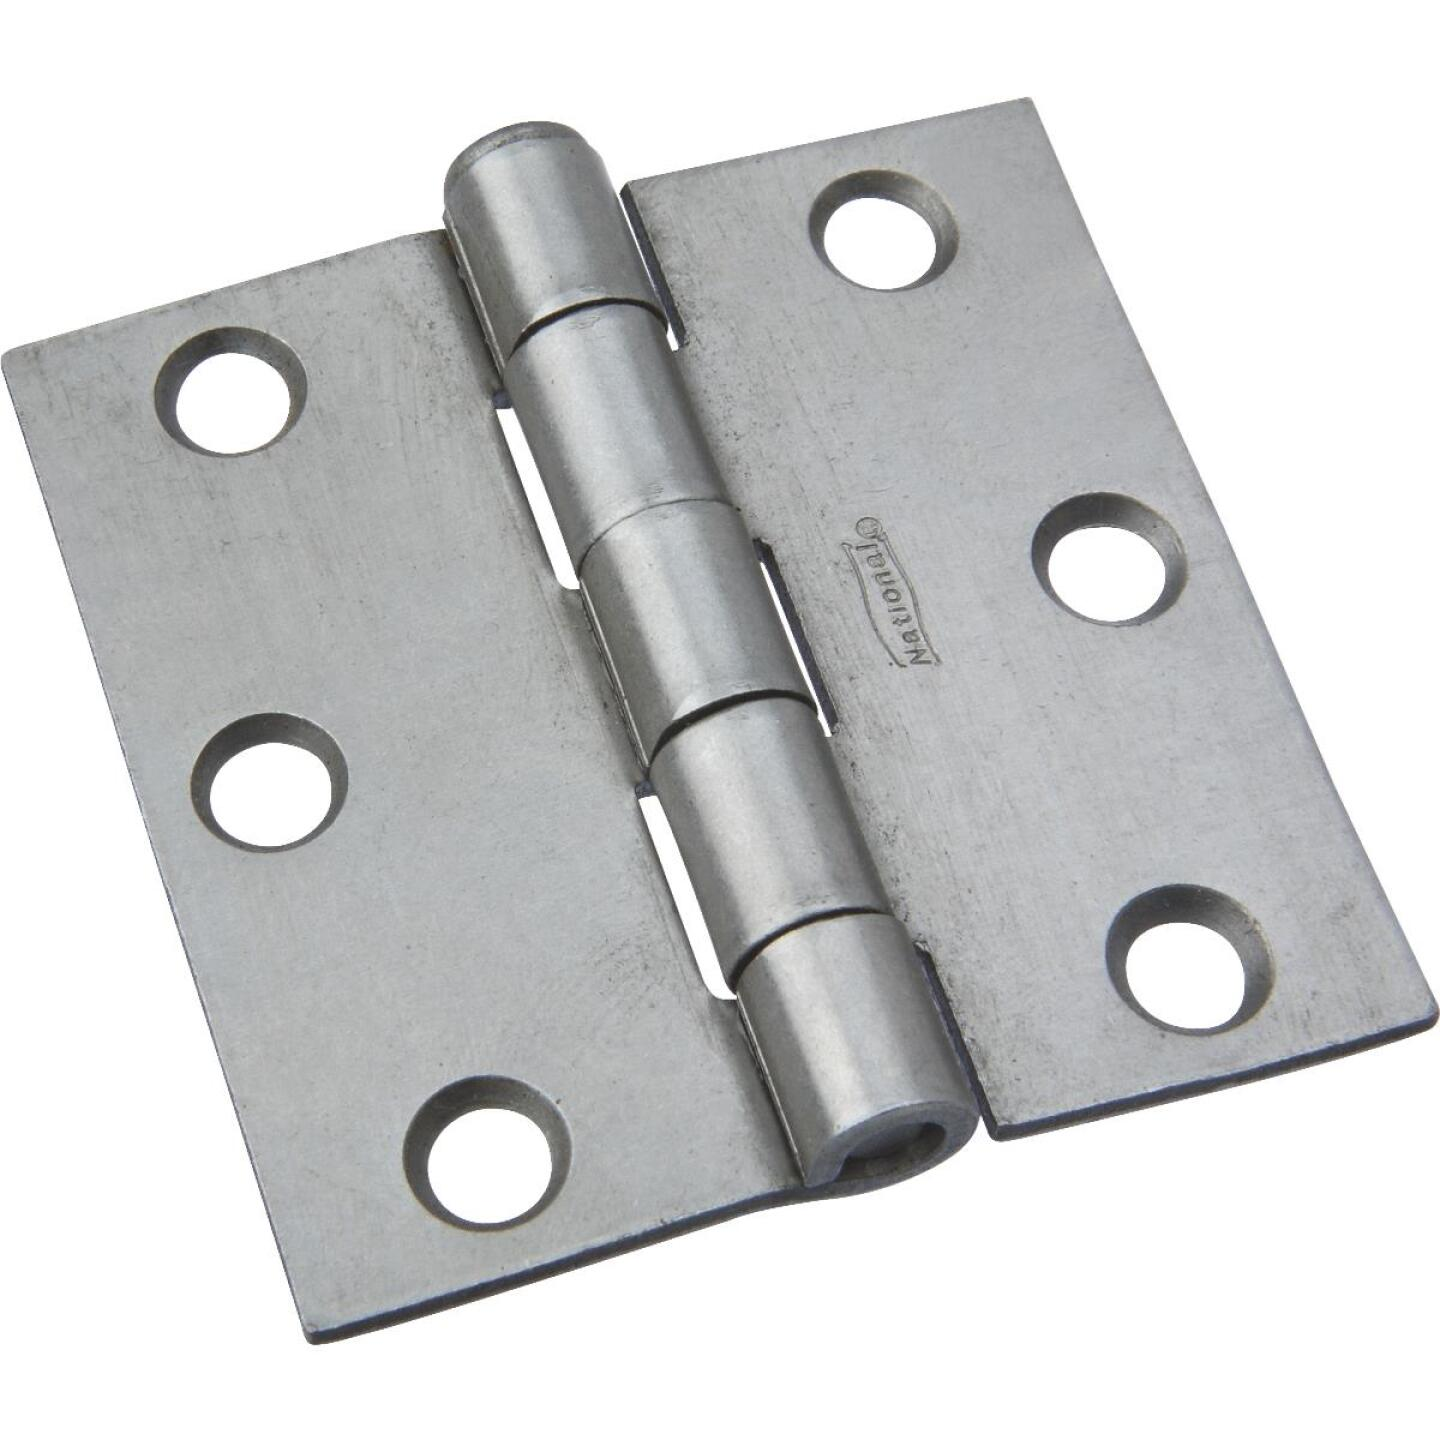 National 2-1/2 In. Square Plain Steel Broad Door Hinge Image 1